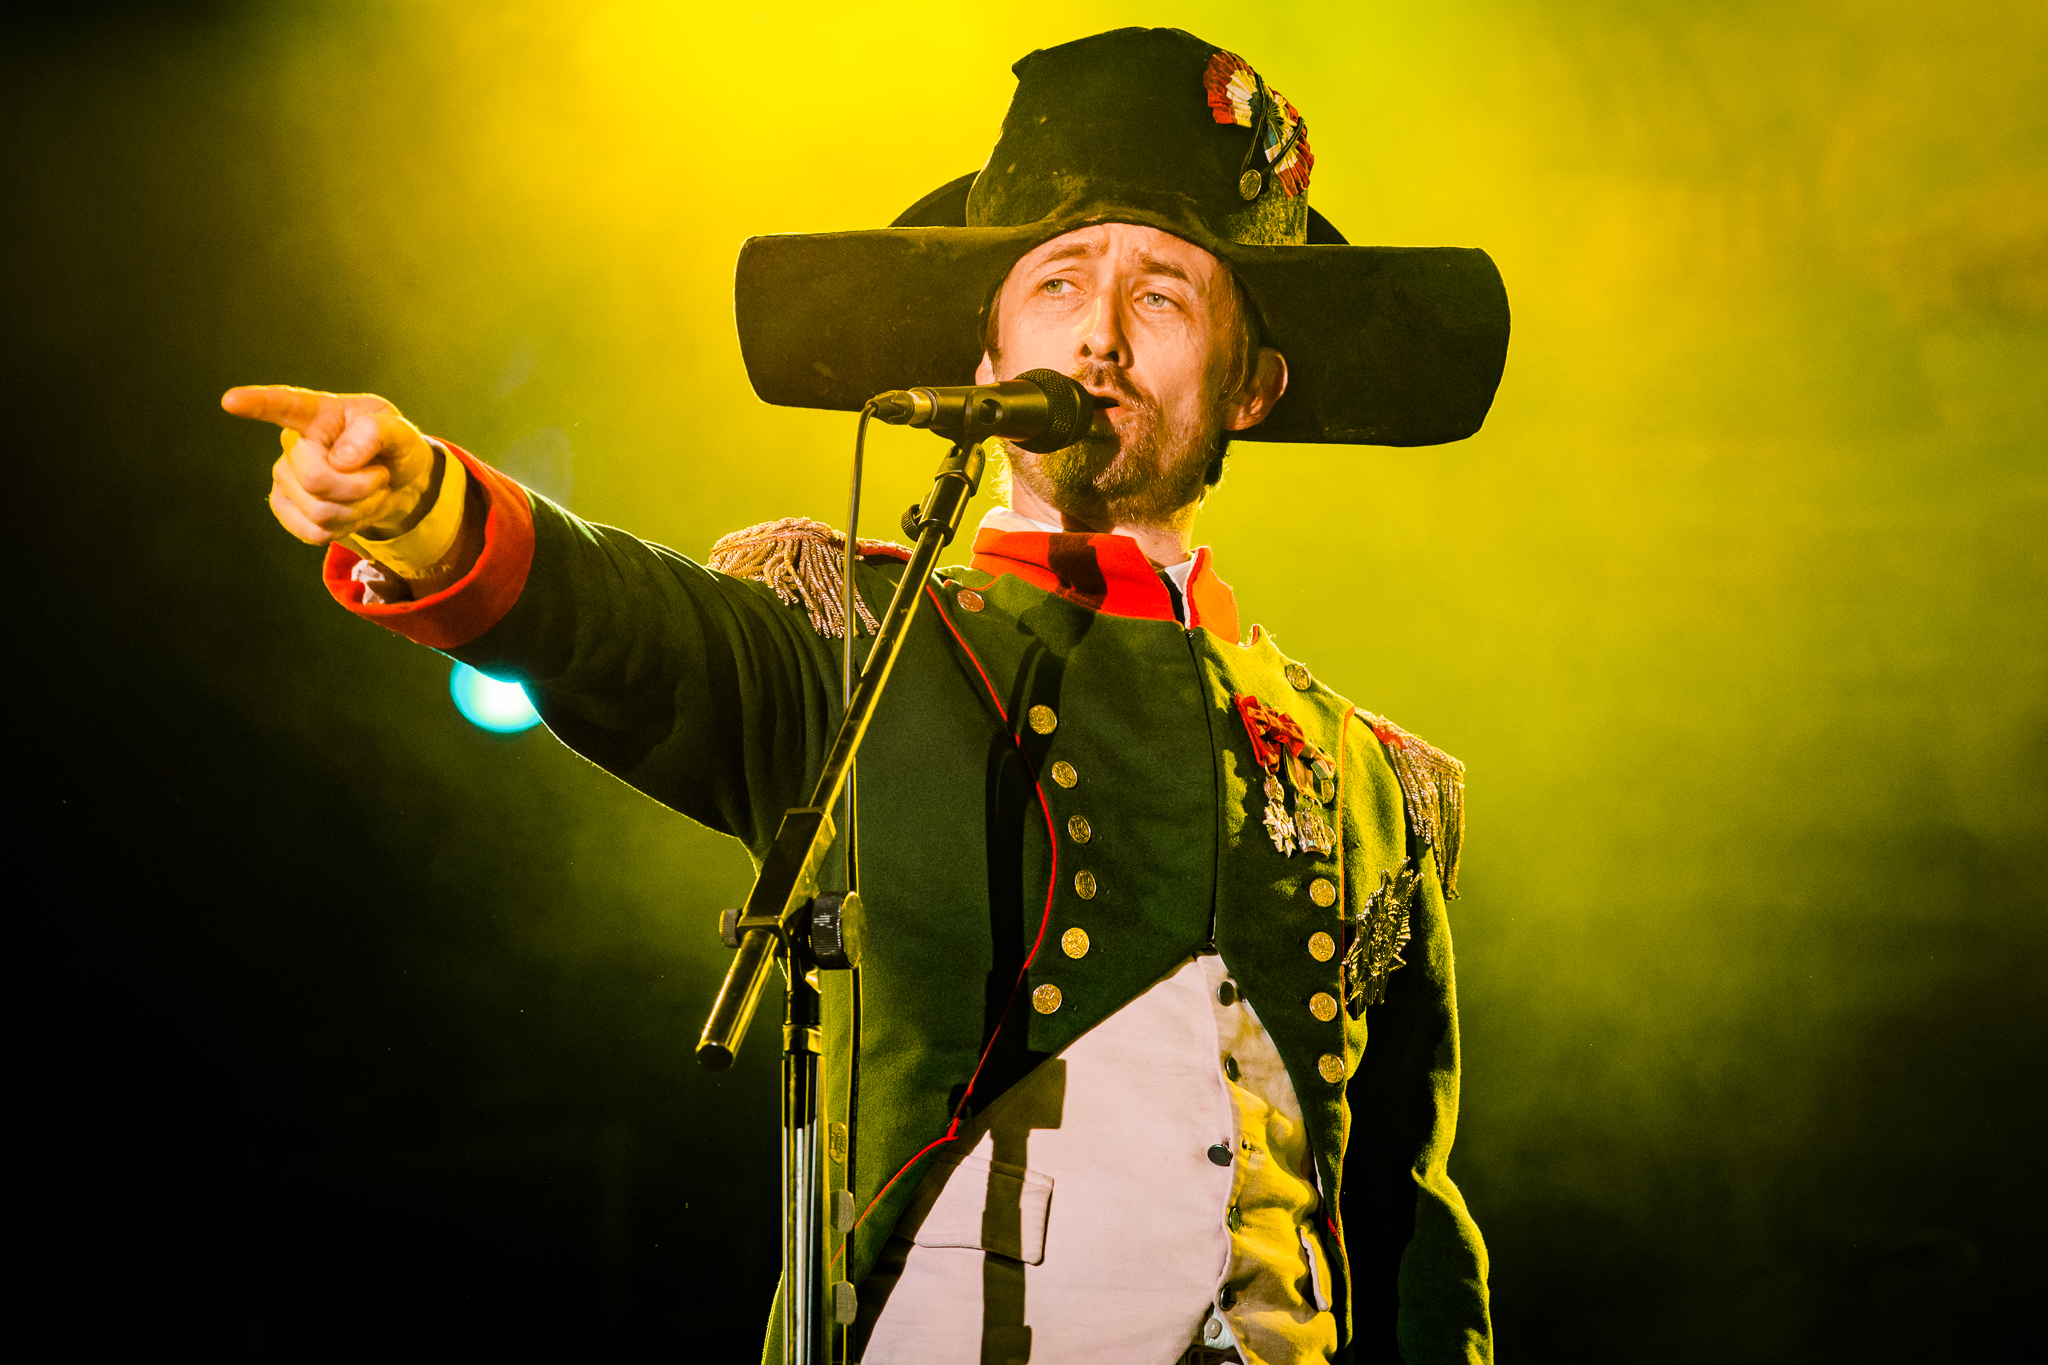 The Divine Comedy headlining the first night of Fairport's Cropredy Convention 2017 (photo by Matt Condon /  @arcane93 )